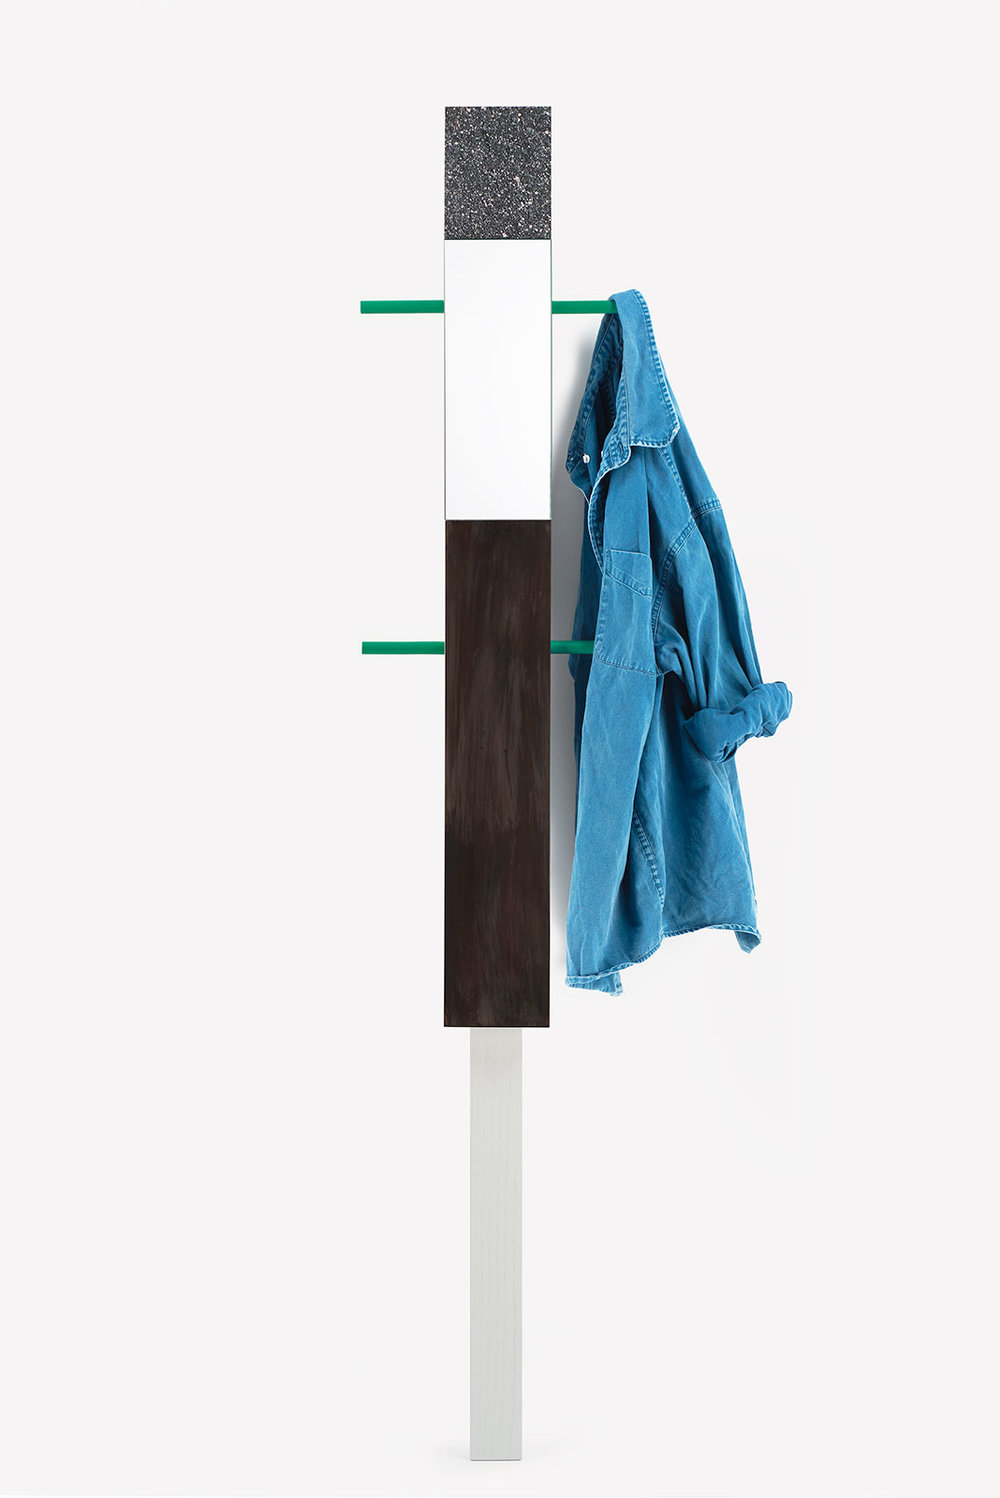 Periscope-coat-rack-zoe-mowat-02.jpg